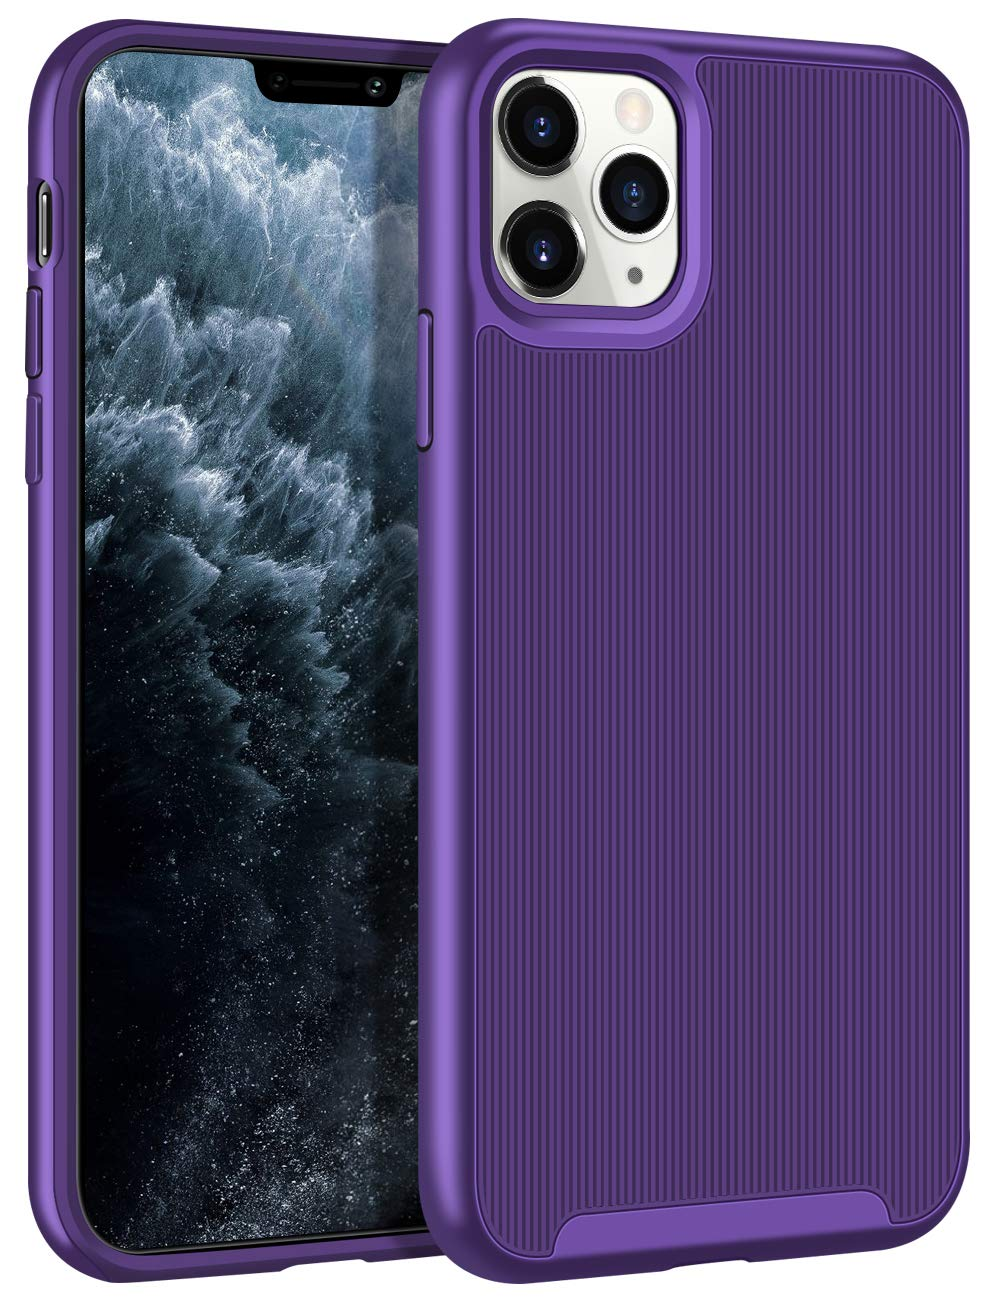 HoneyAKE Case for iPhone 11 Pro Case Slim Protective Cover Anti Slip Hybrid Soft TPU Hard PC Bumper Raised Lips Rugged Shockproof Protection Shell for 5.8 inches iPhone 11 Pro Purple